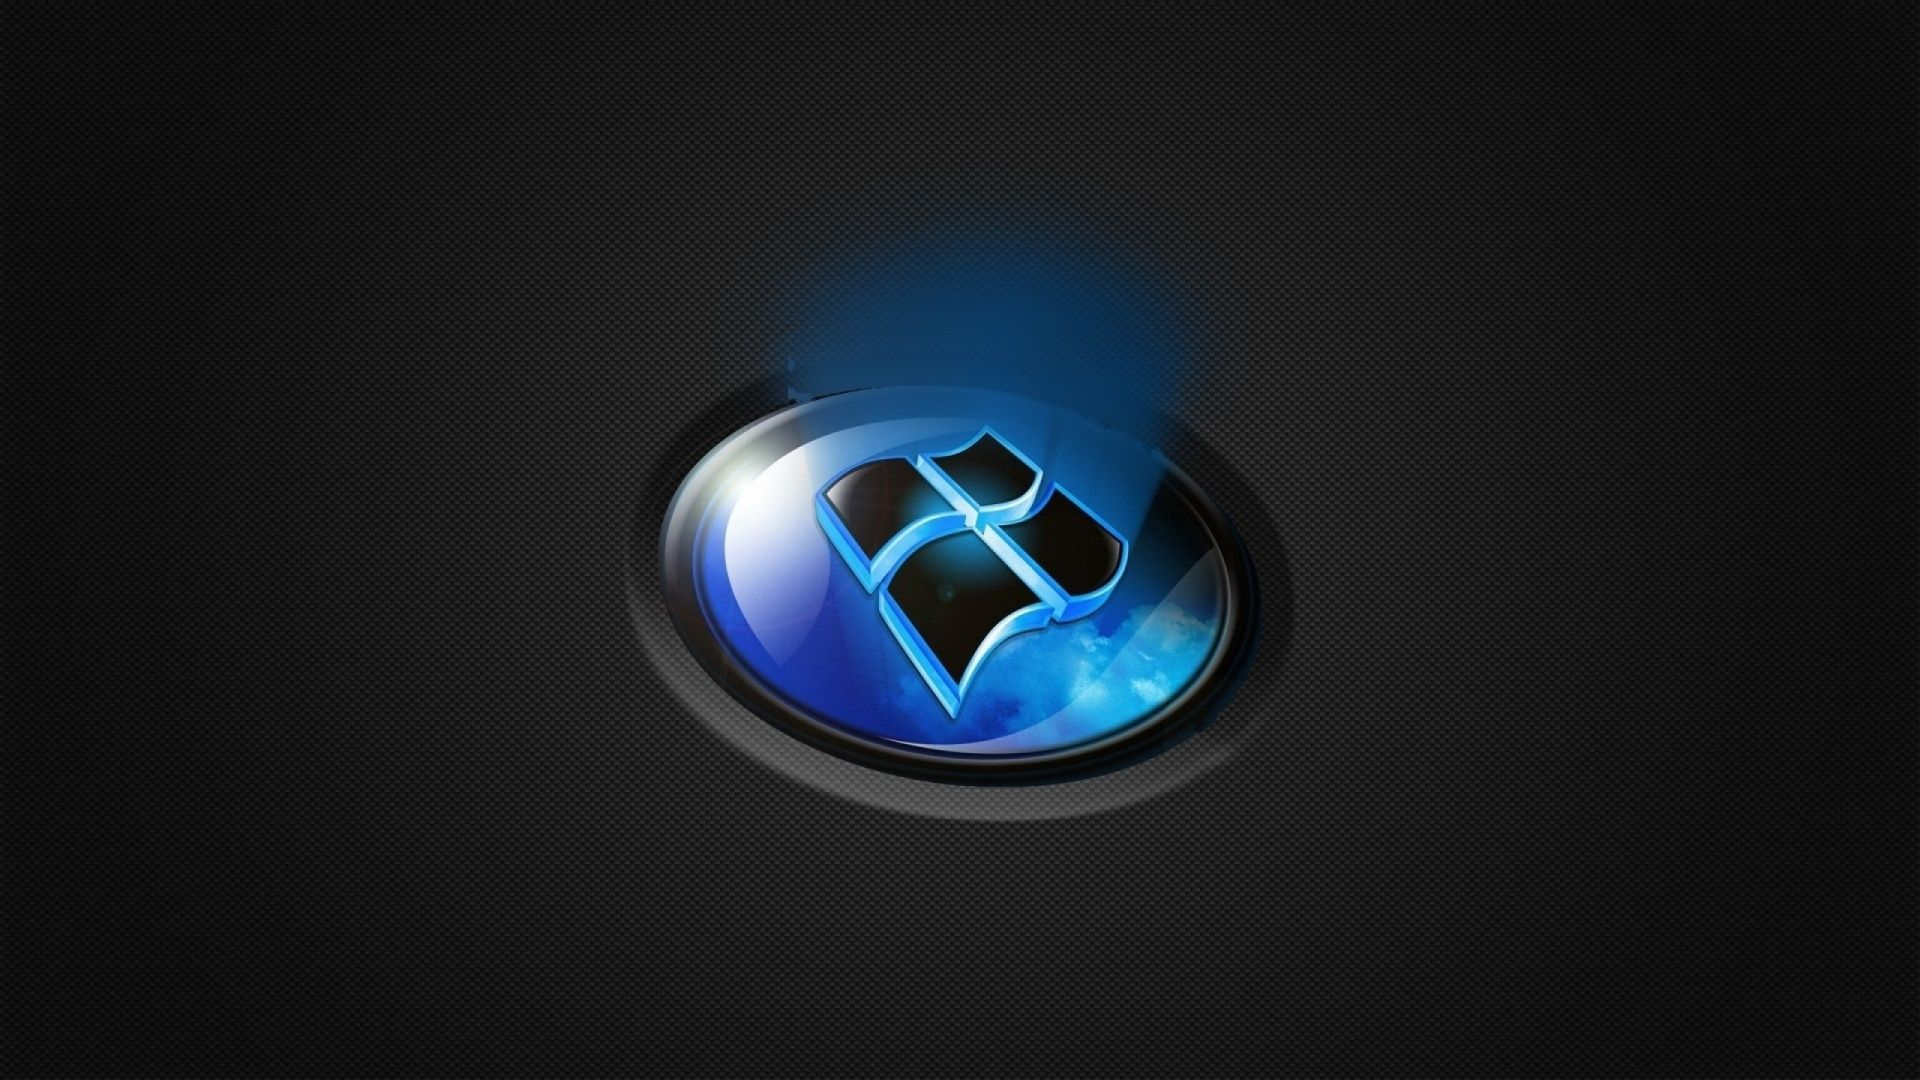 Windows 8 1 Blue Logo Hd Wallpaper Picture Background Desktop Wallpaper Pc Wallpaper Heart Iphone Wallpaper